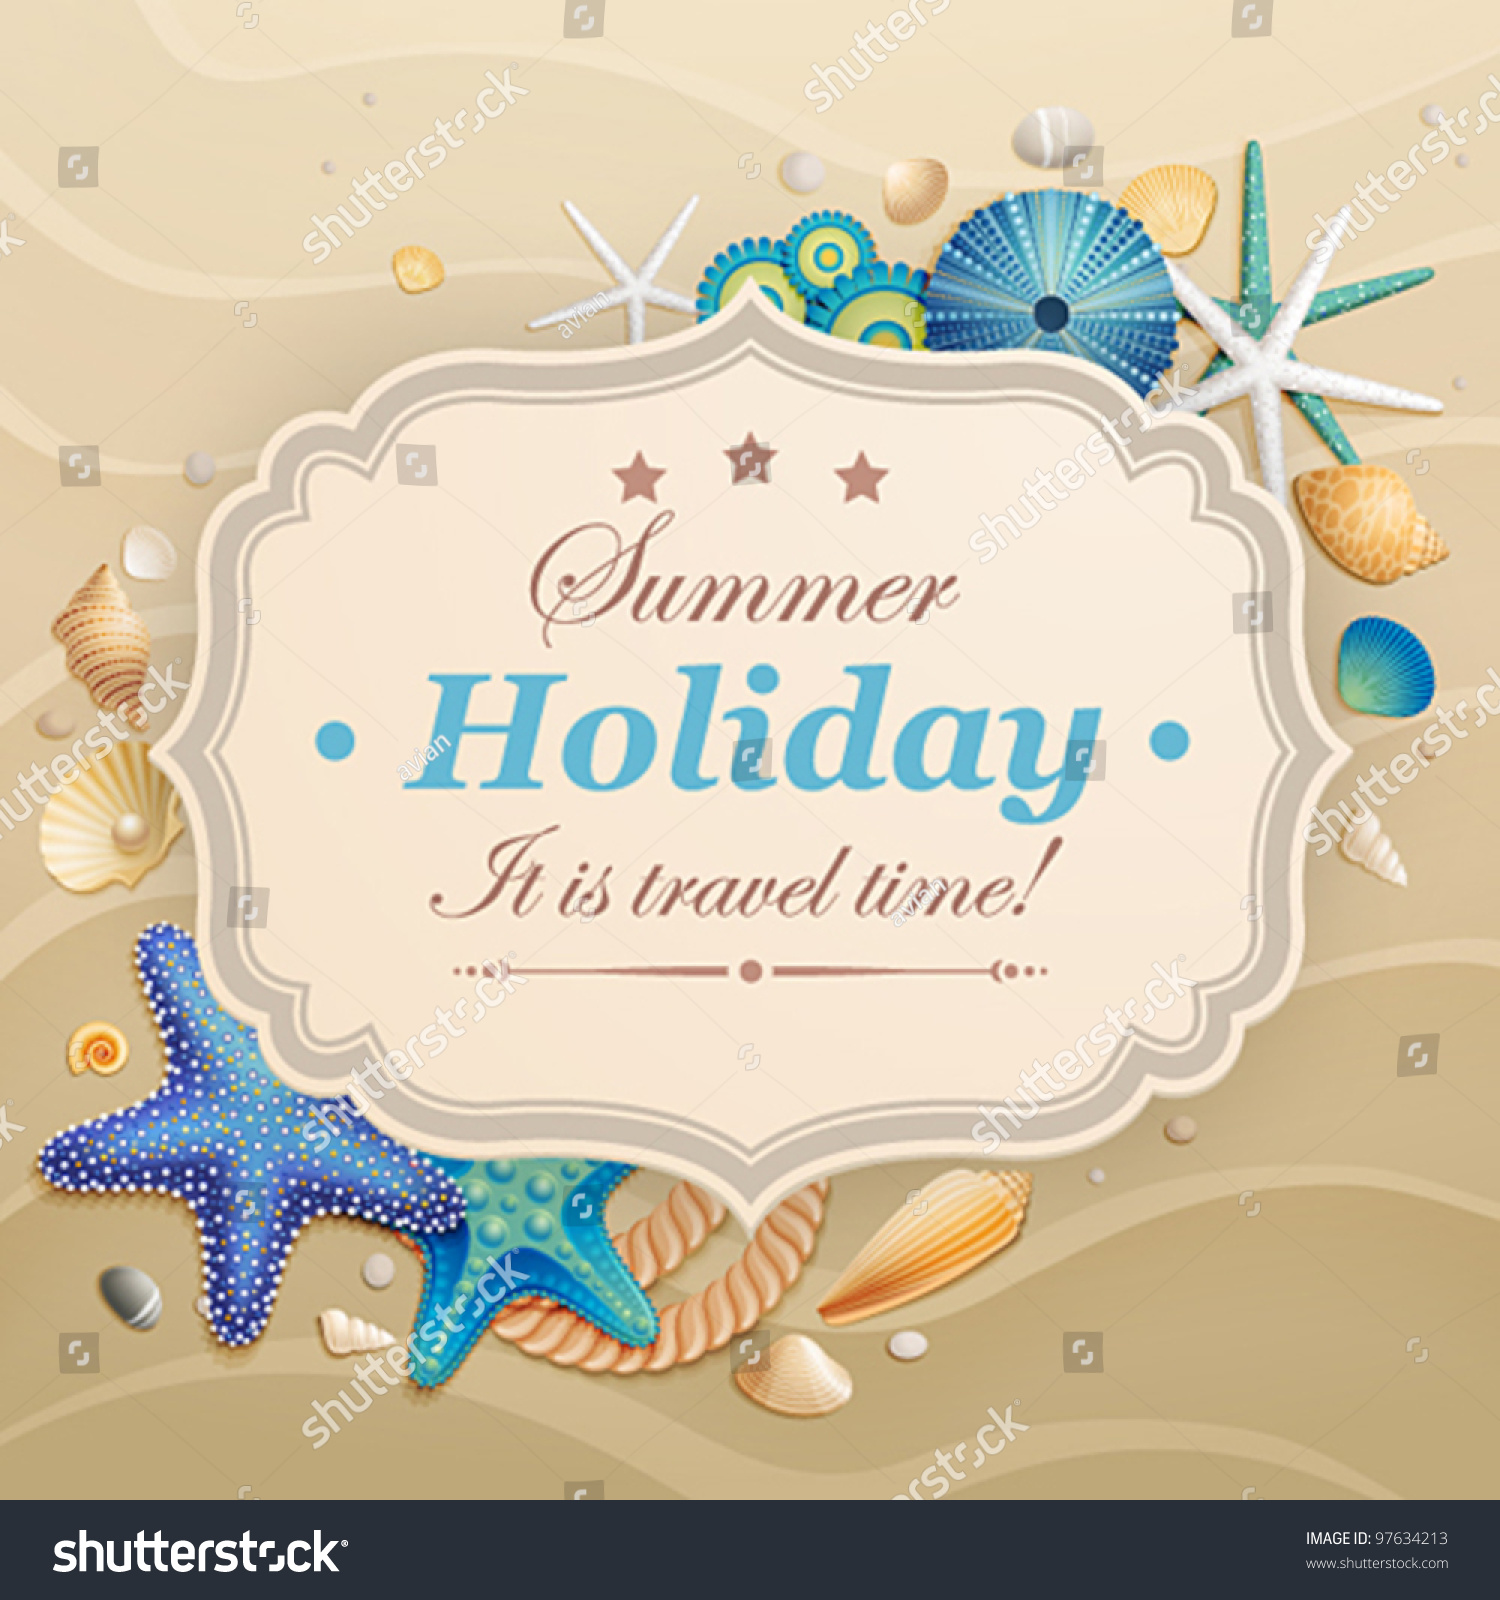 Summer travel card in retro style vintage vacation postcard with - Vintage Holiday Greeting Card Shells Starfishes Stock